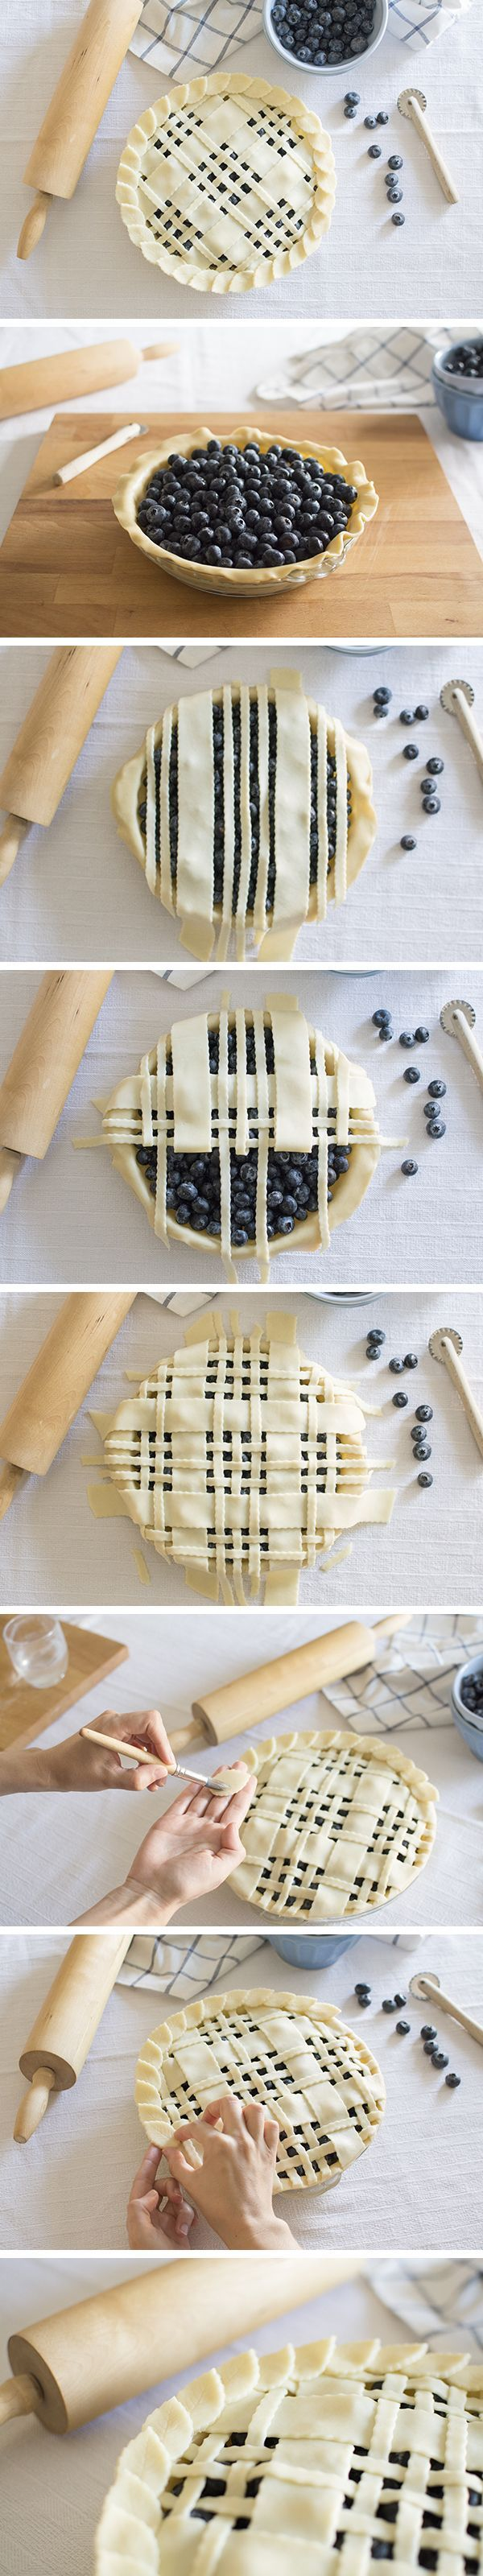 Blueberry pie with lattice and leaves design pie crust - Tarta de arándanos con enrejado y hojas http://amzn.to/2jlTh5k